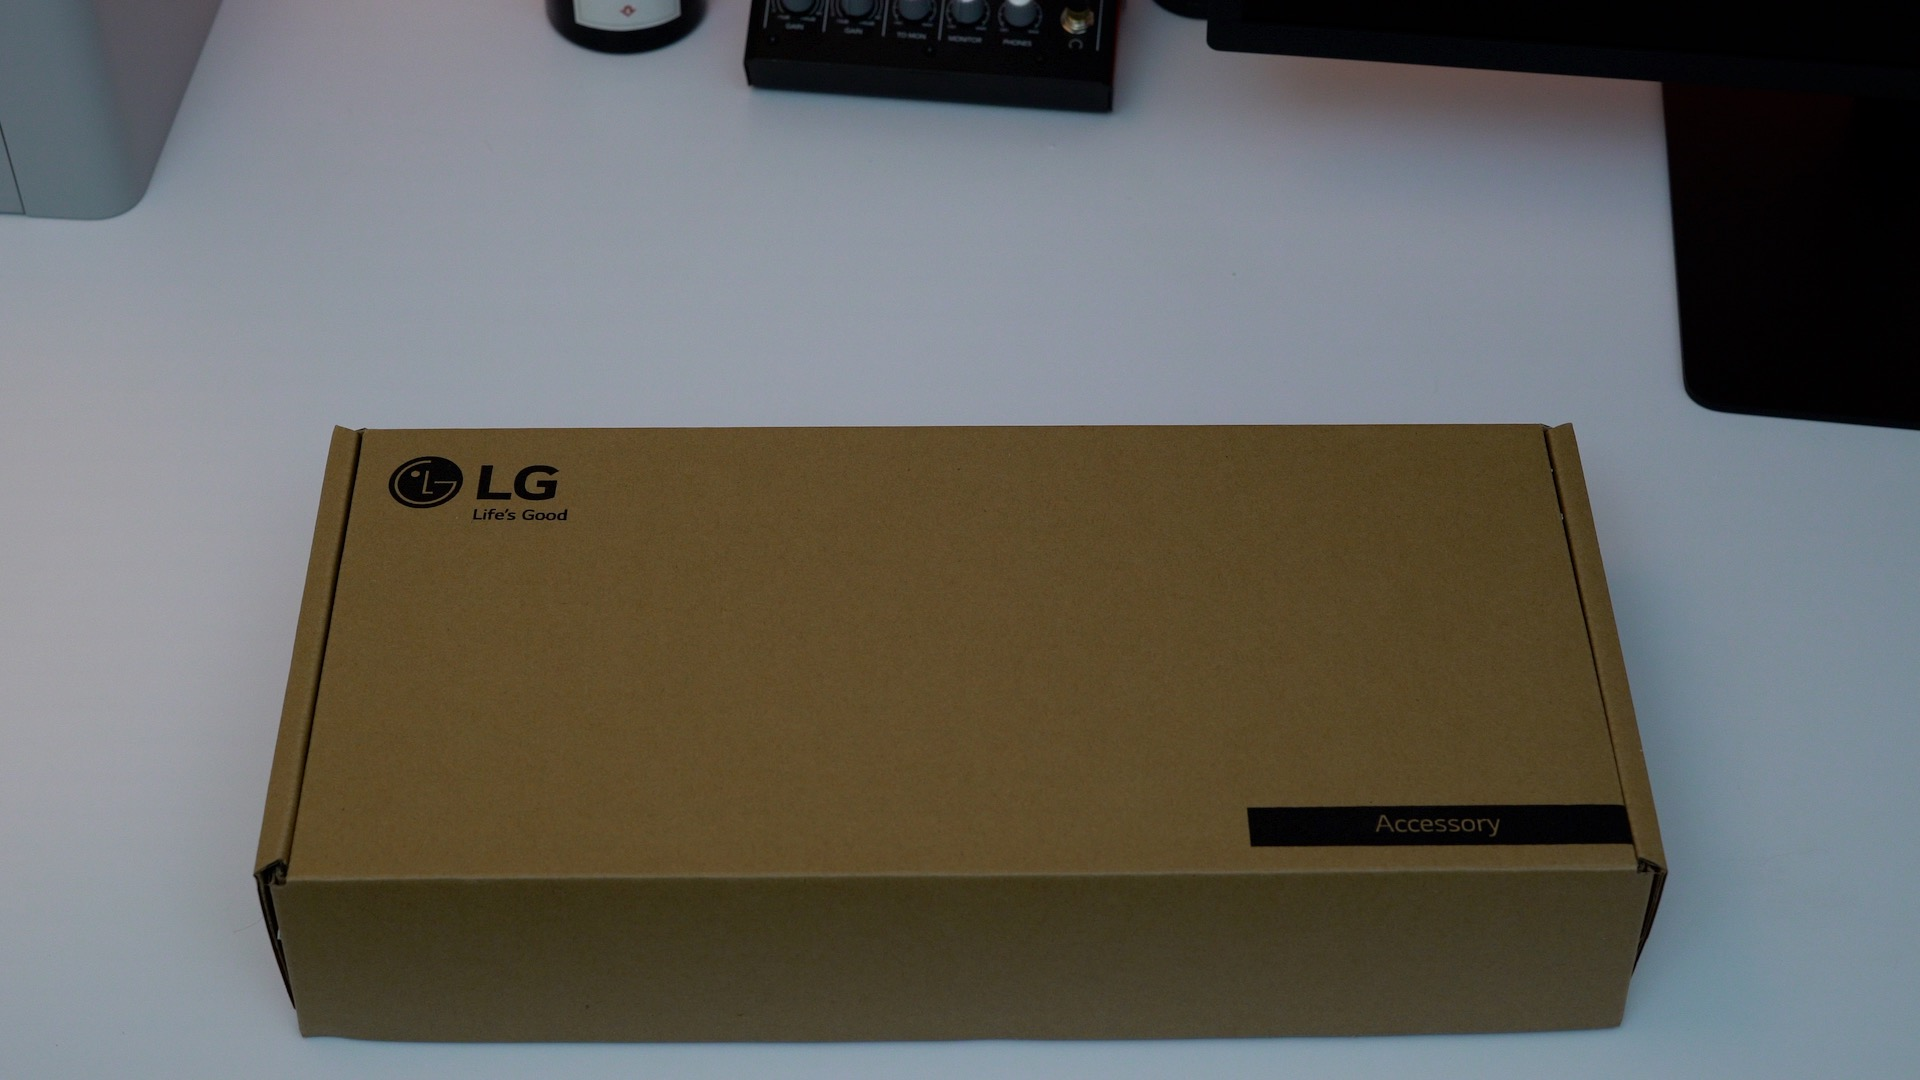 lg-ultrafine-5k-display-accessory-box